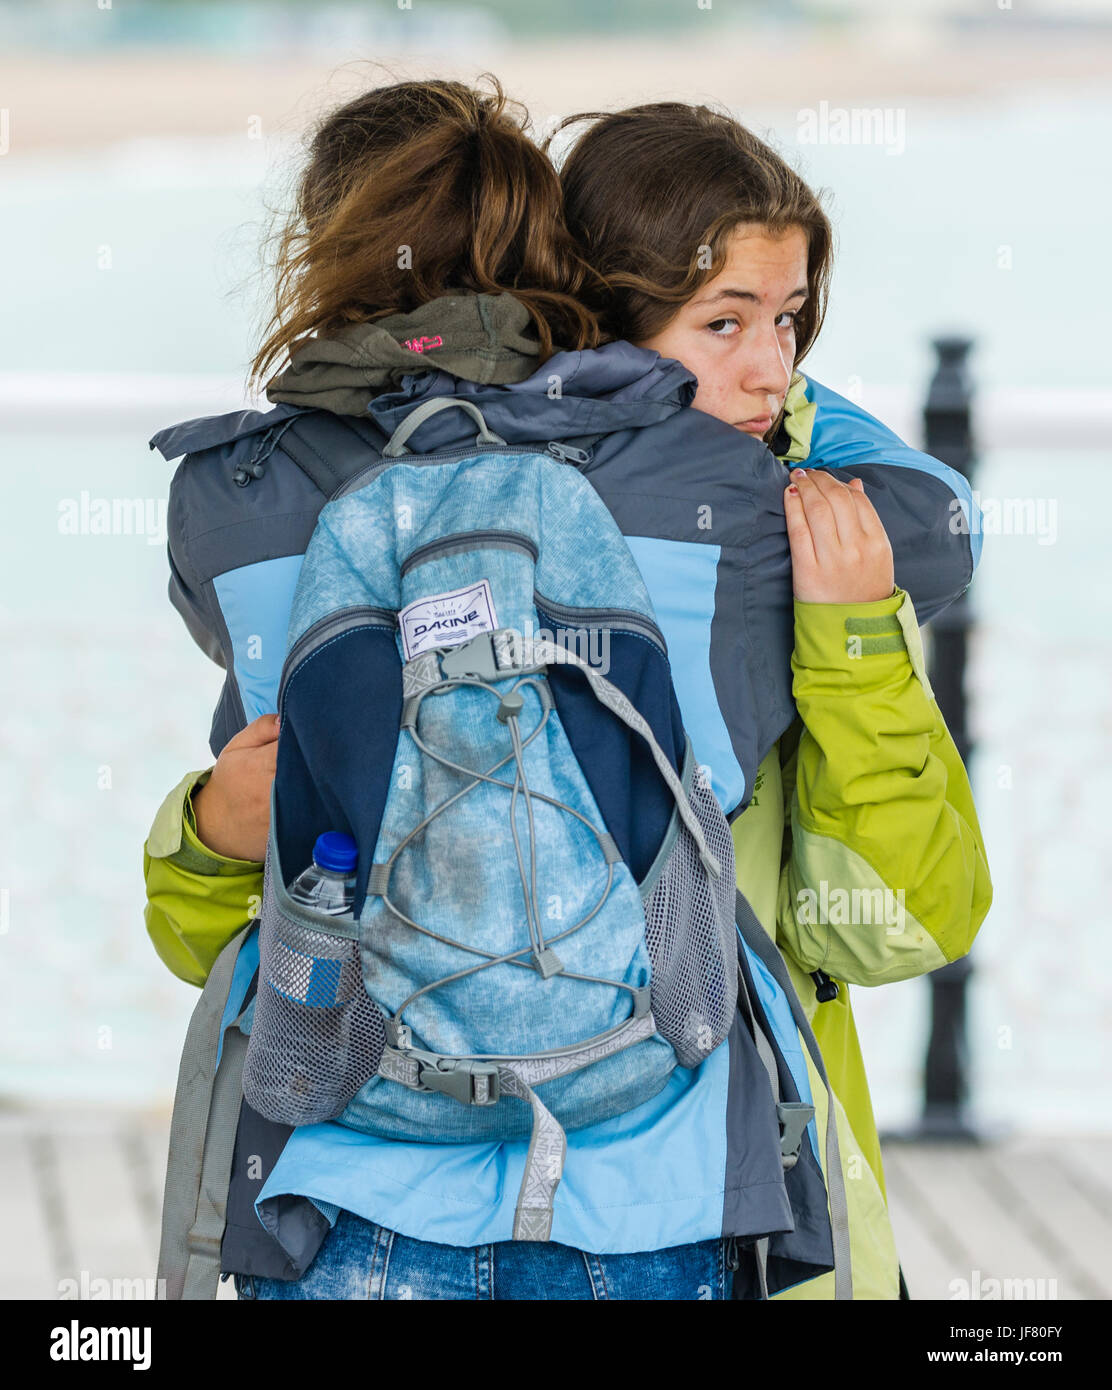 girls-hugging-young-girls-having-a-hug-to-give-comfort-as-one-of-them-JF80FY.jpg